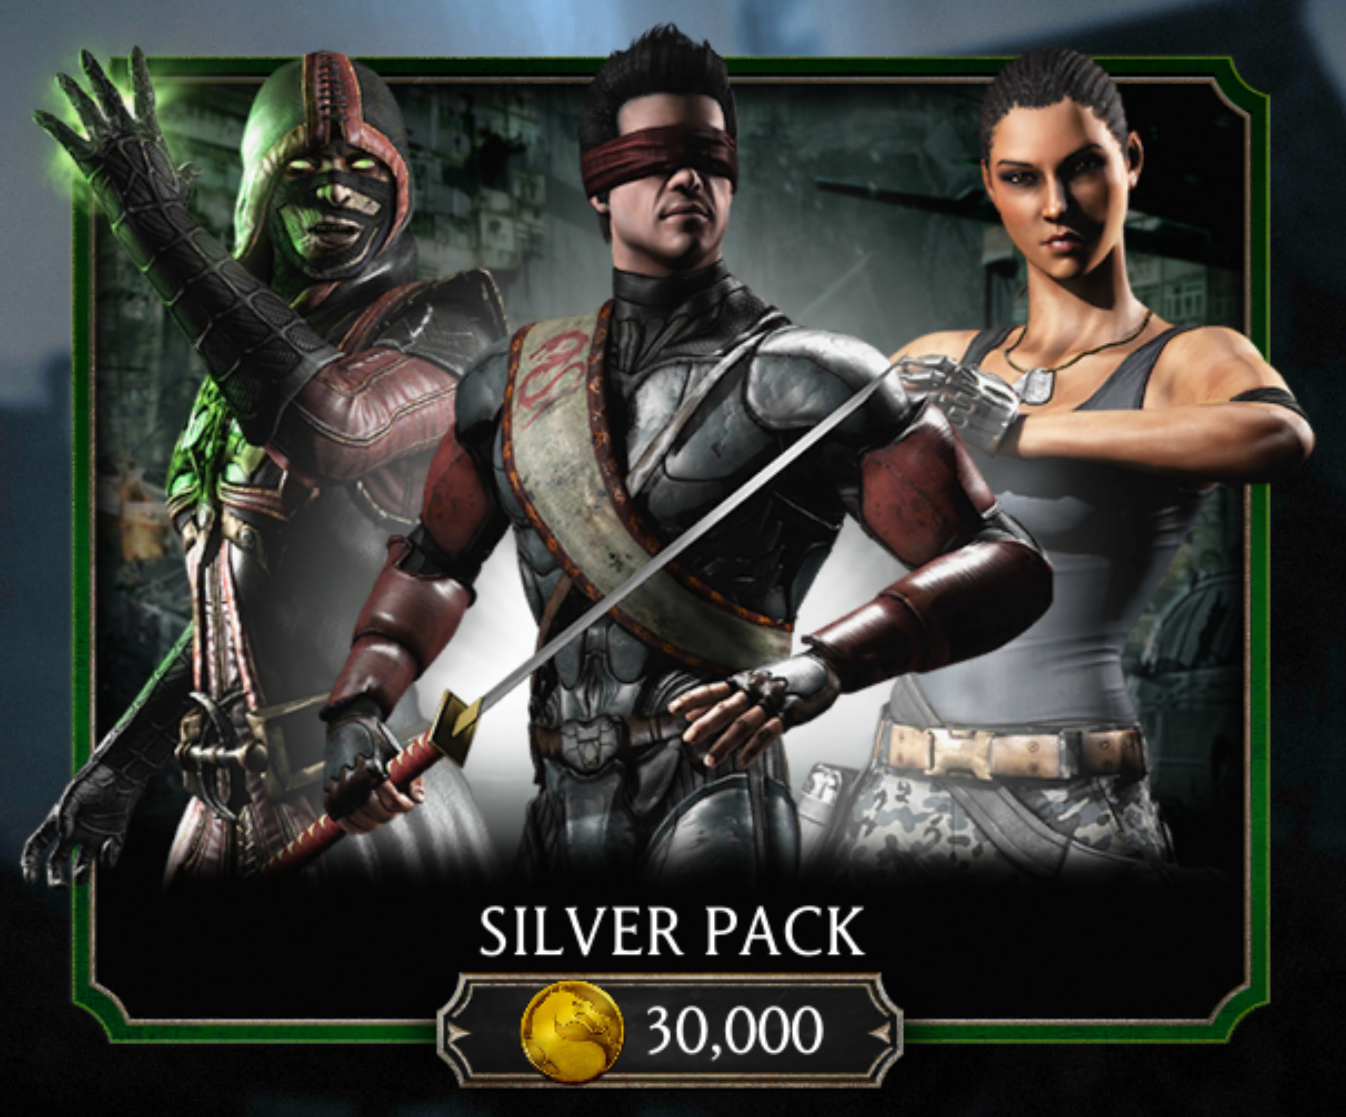 Silver Pack | Mortal Kombat Mobile Wikia | FANDOM powered by